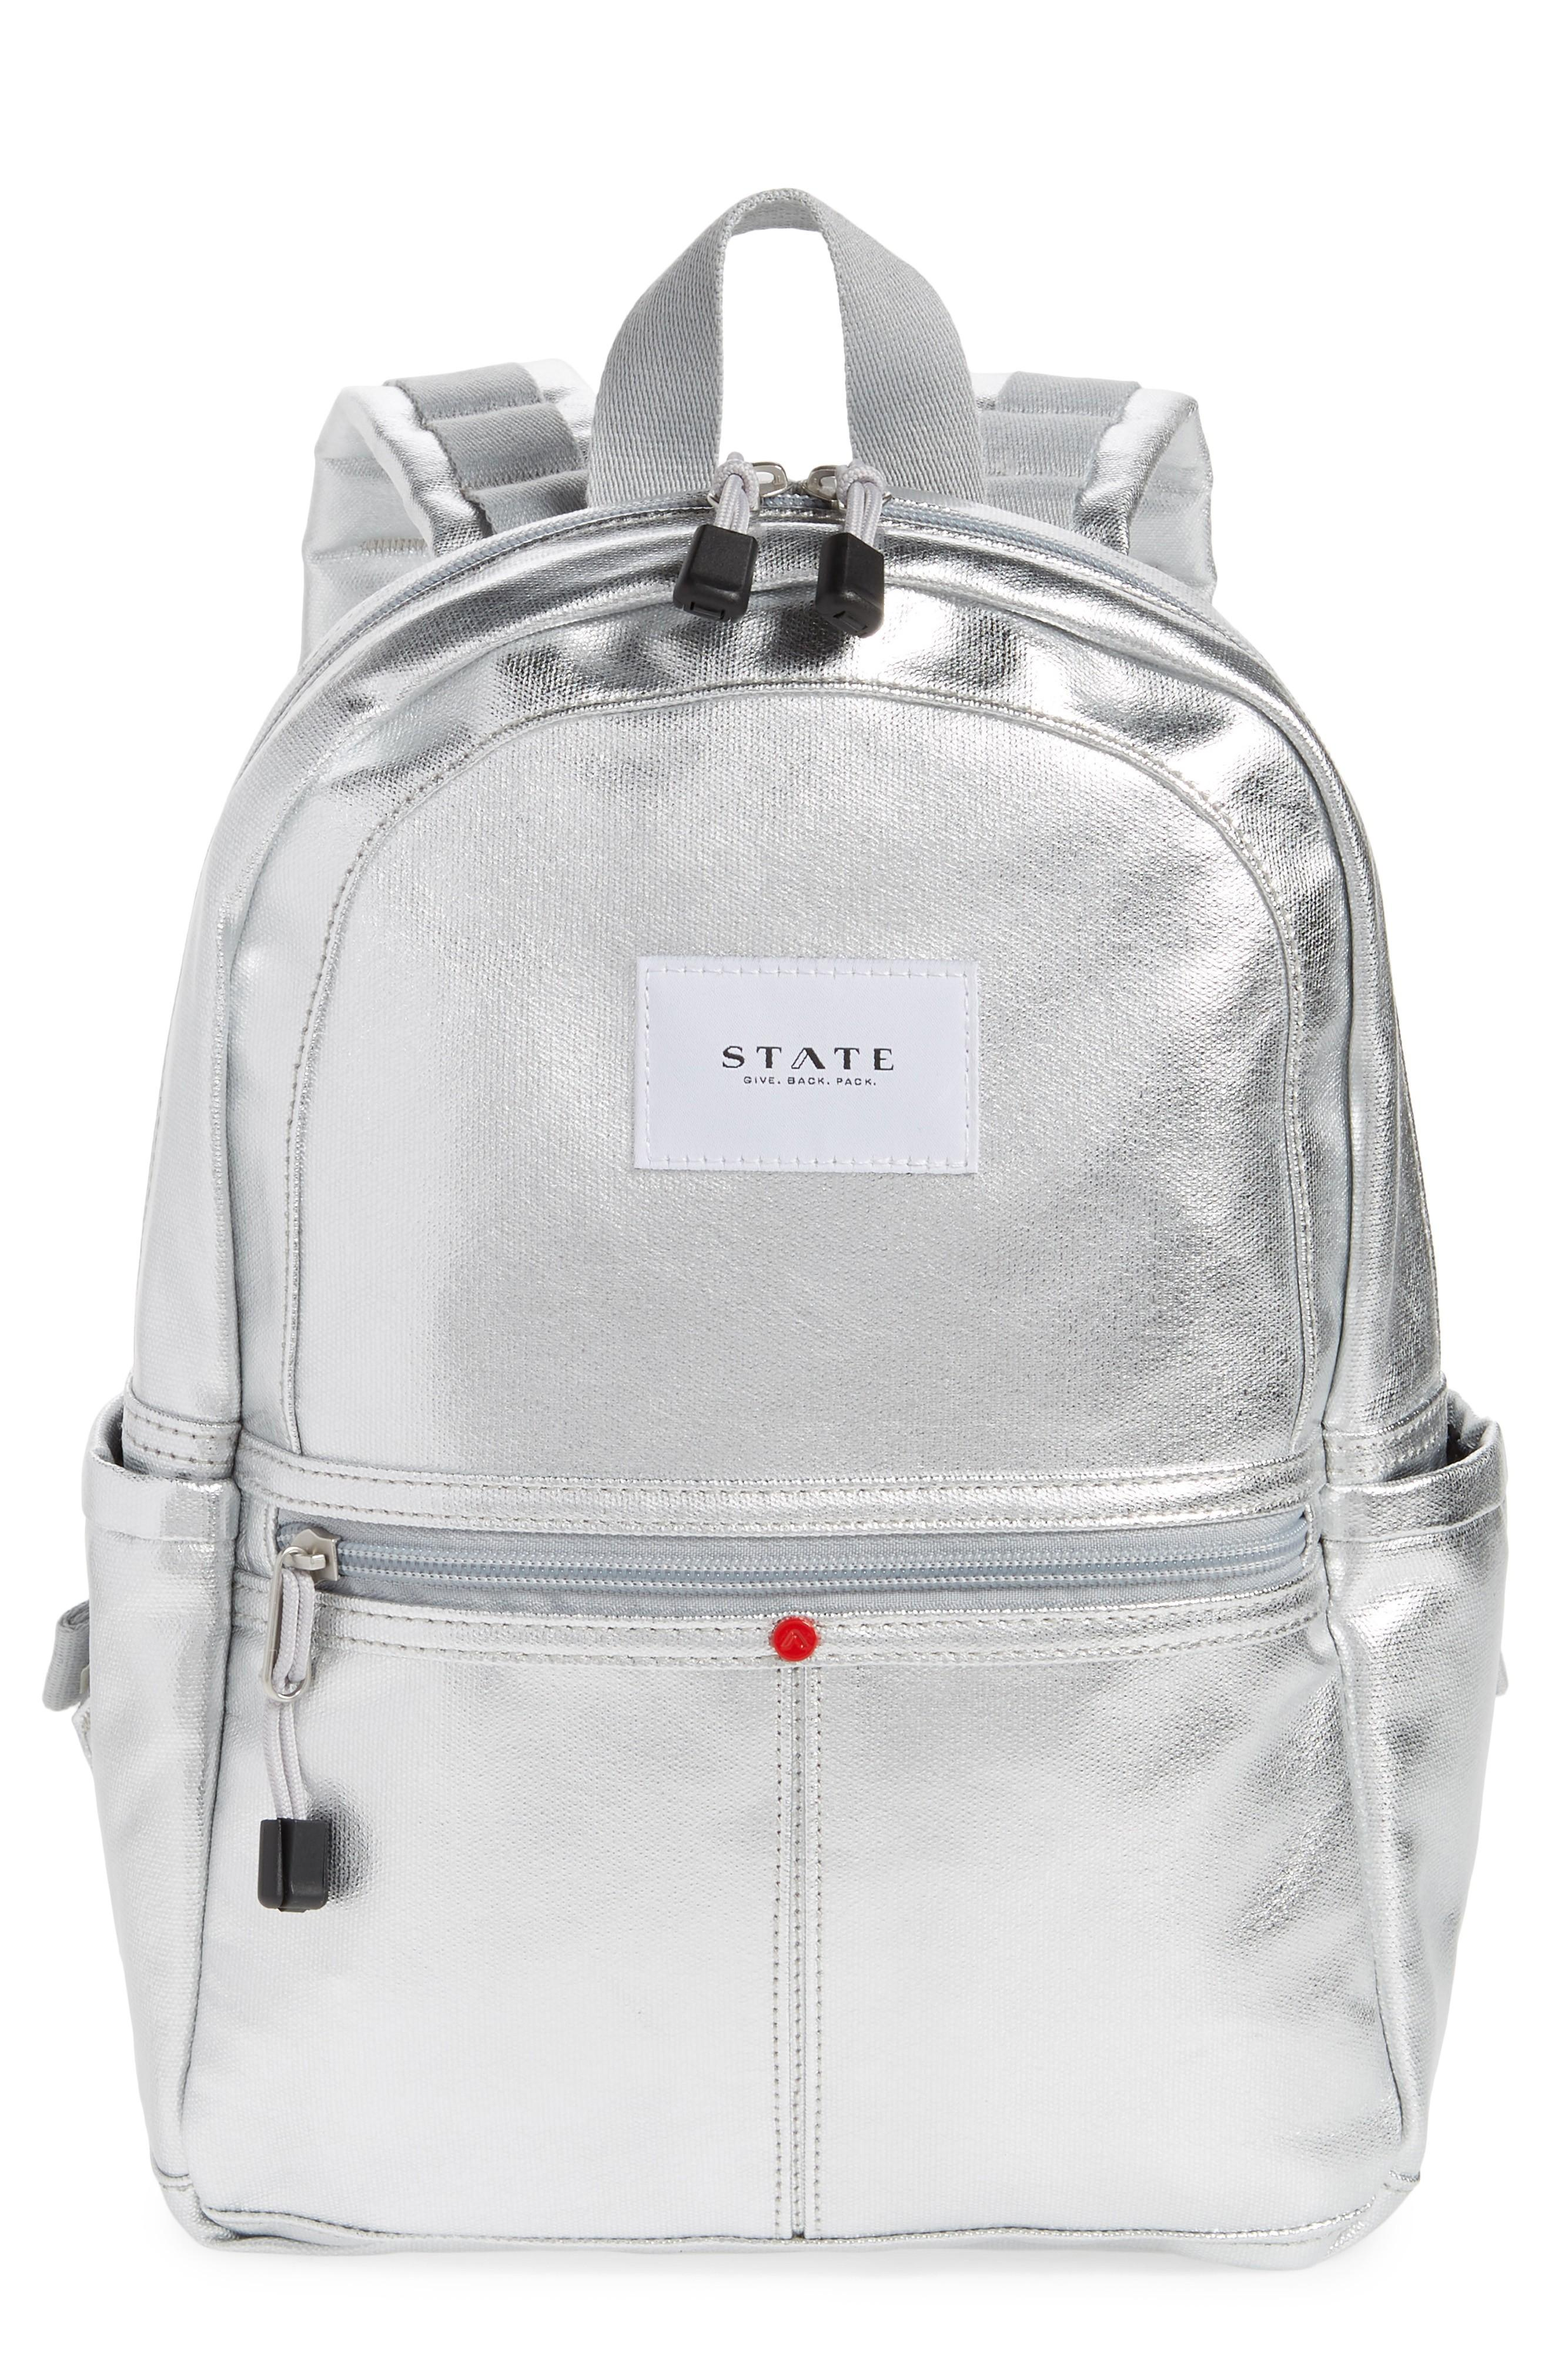 4745ab1431d State Downtown Mini Kane Canvas Backpack - Metallic In Silver